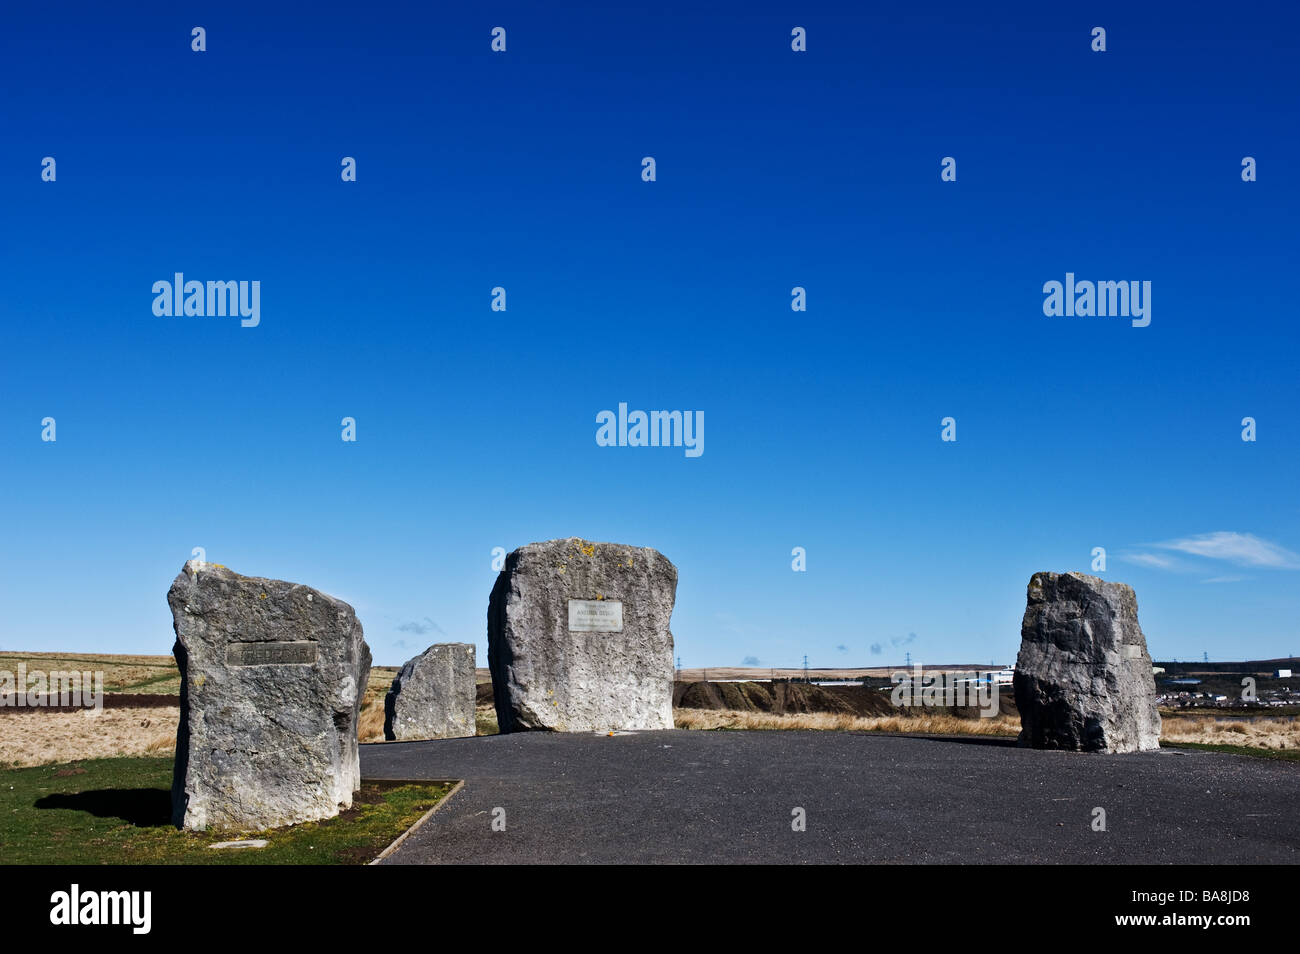 The Aneurin Bevan Stones near Tredegar in Wales.  Photo by Gordon Scammell - Stock Image